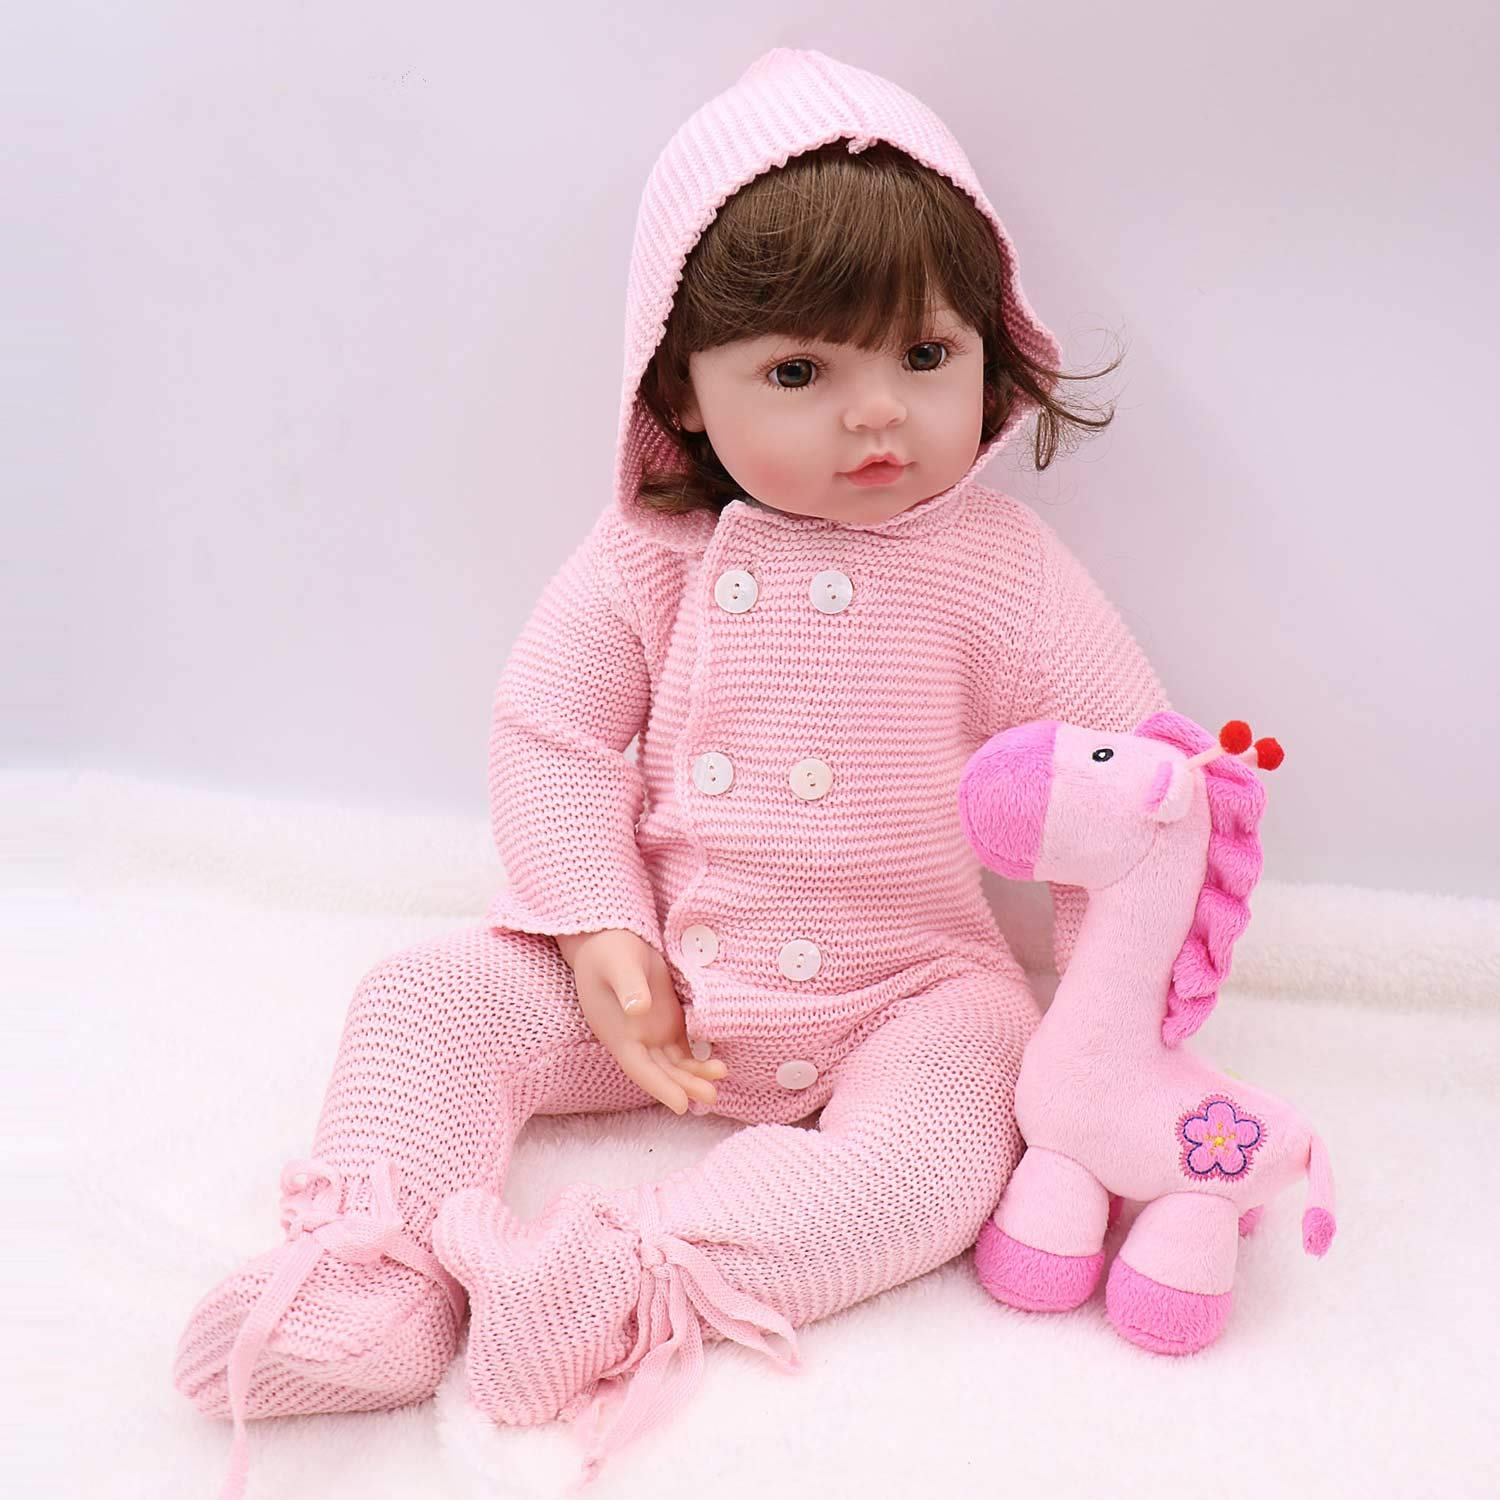 PURSUEBABY Pursue Baby Doll Adorable Real Life Reborn Toddlers Grils with Curly Hair Autumn, 24 Inch Soft Body Reborn Baby Toddler Gift for Christmas